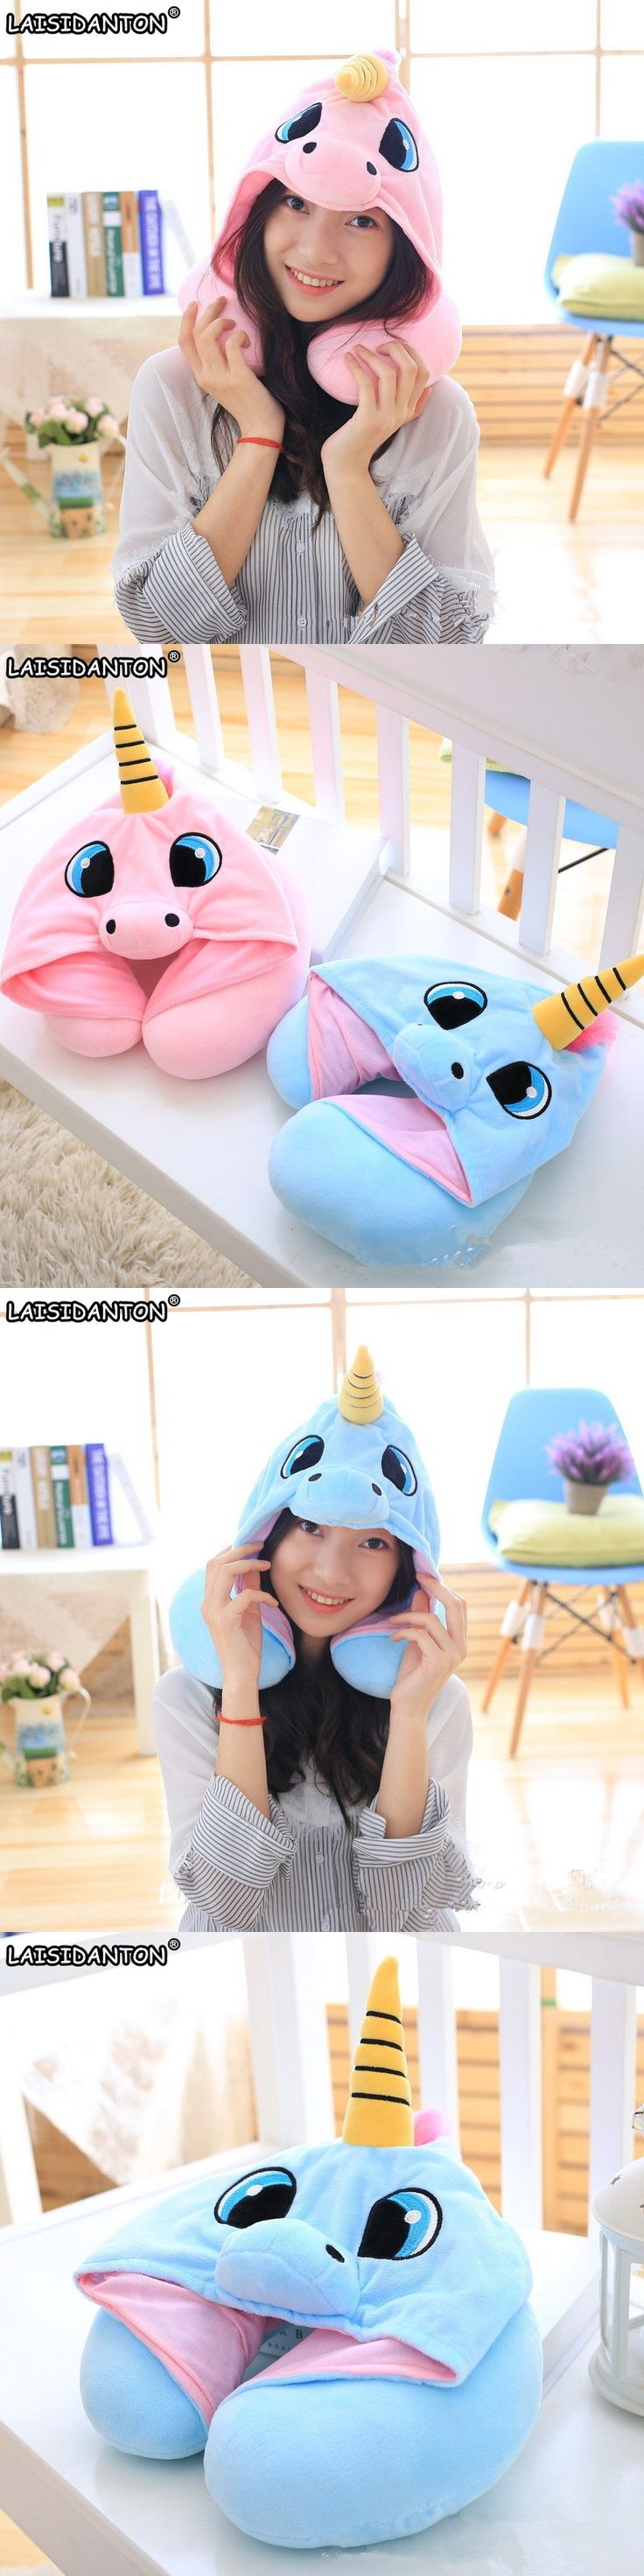 af3b8b2accc LAISIDANTON Women s Hat Creative U Shaped Neck Pillow With Hat Neck Pillow  Cute Cartoon Unicorn Hats